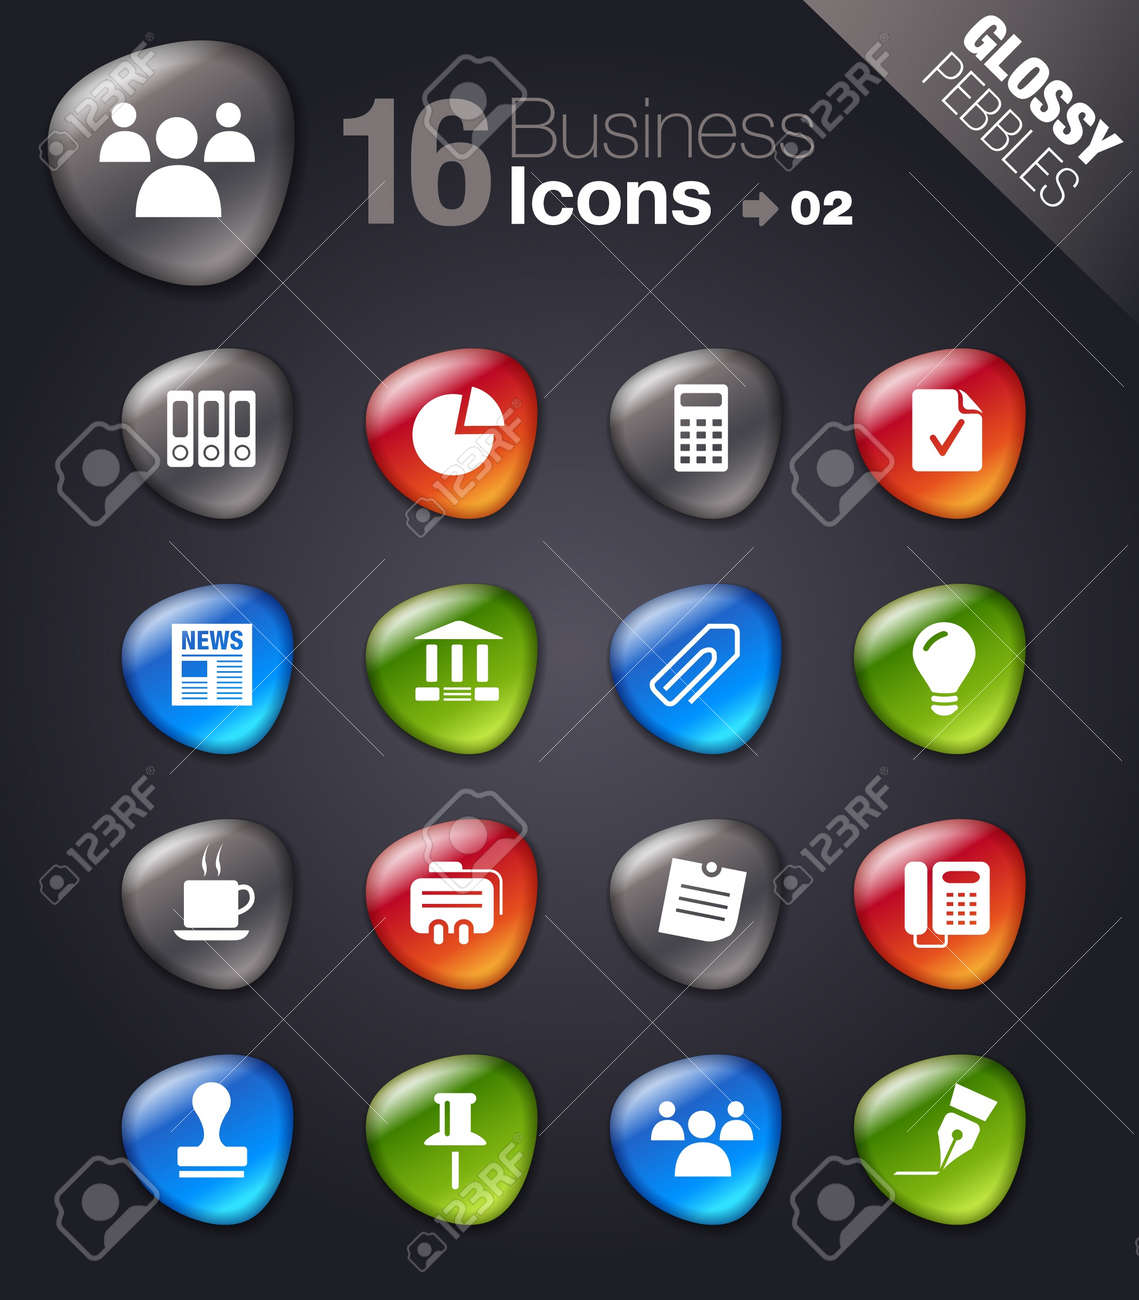 Glossy Pebbles - Office and Business icons Stock Vector - 11475956